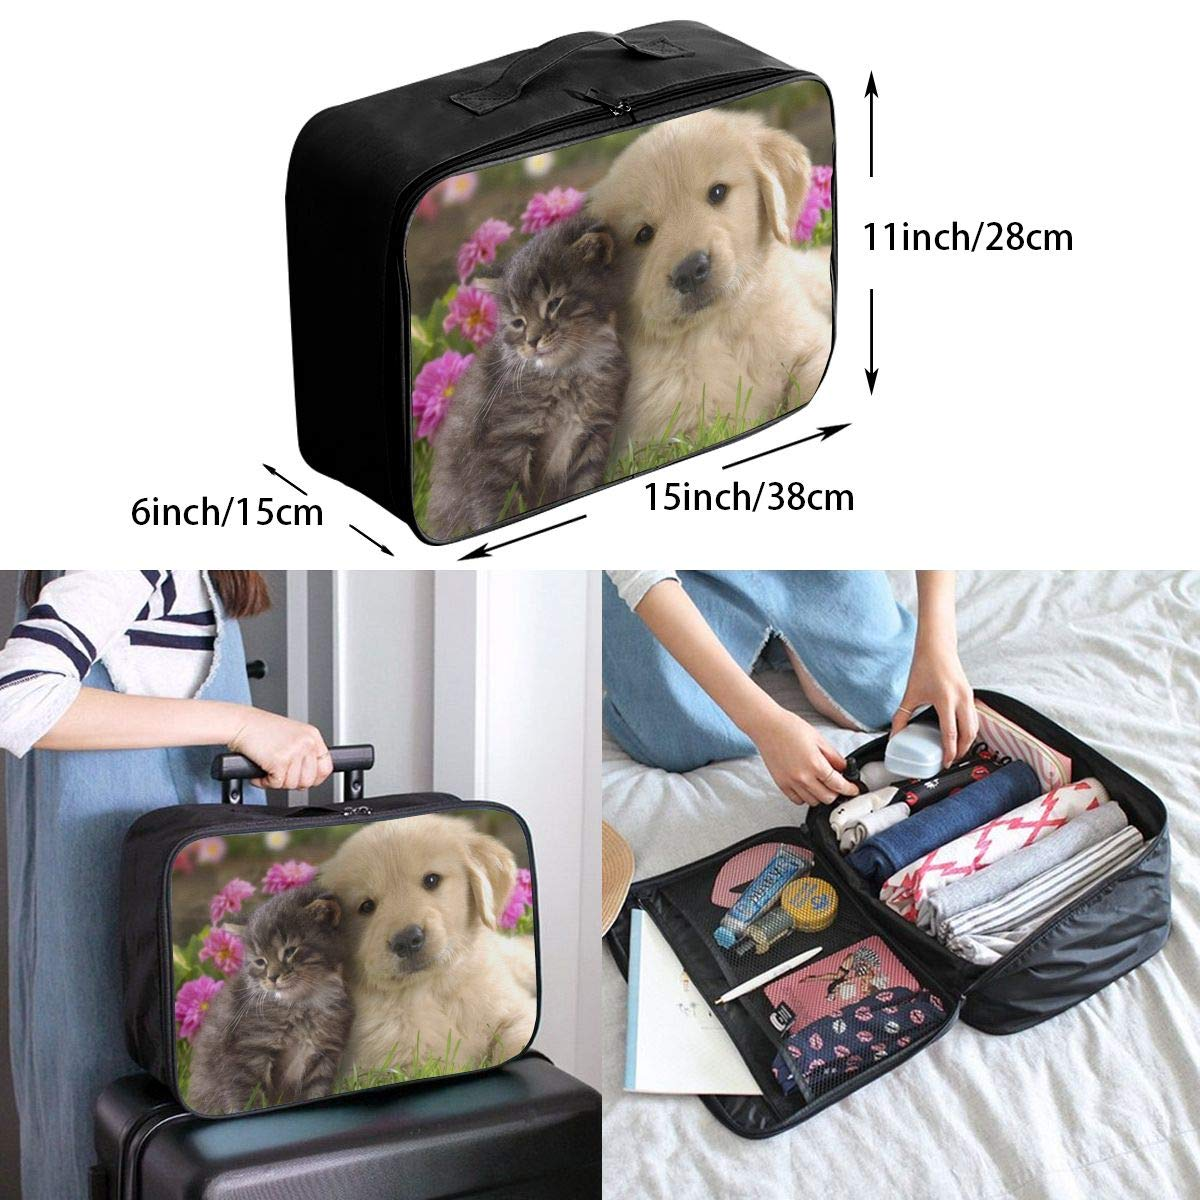 STWINW Cute Cat and Dog Hug Travel Fashion Lightweight Large Capacity Portable Waterproof Foldable Storage Carry Luggage Bag Luggage Duffle Tote Bag Hanging Travel Toiletry Bag Travel Makeup Bag